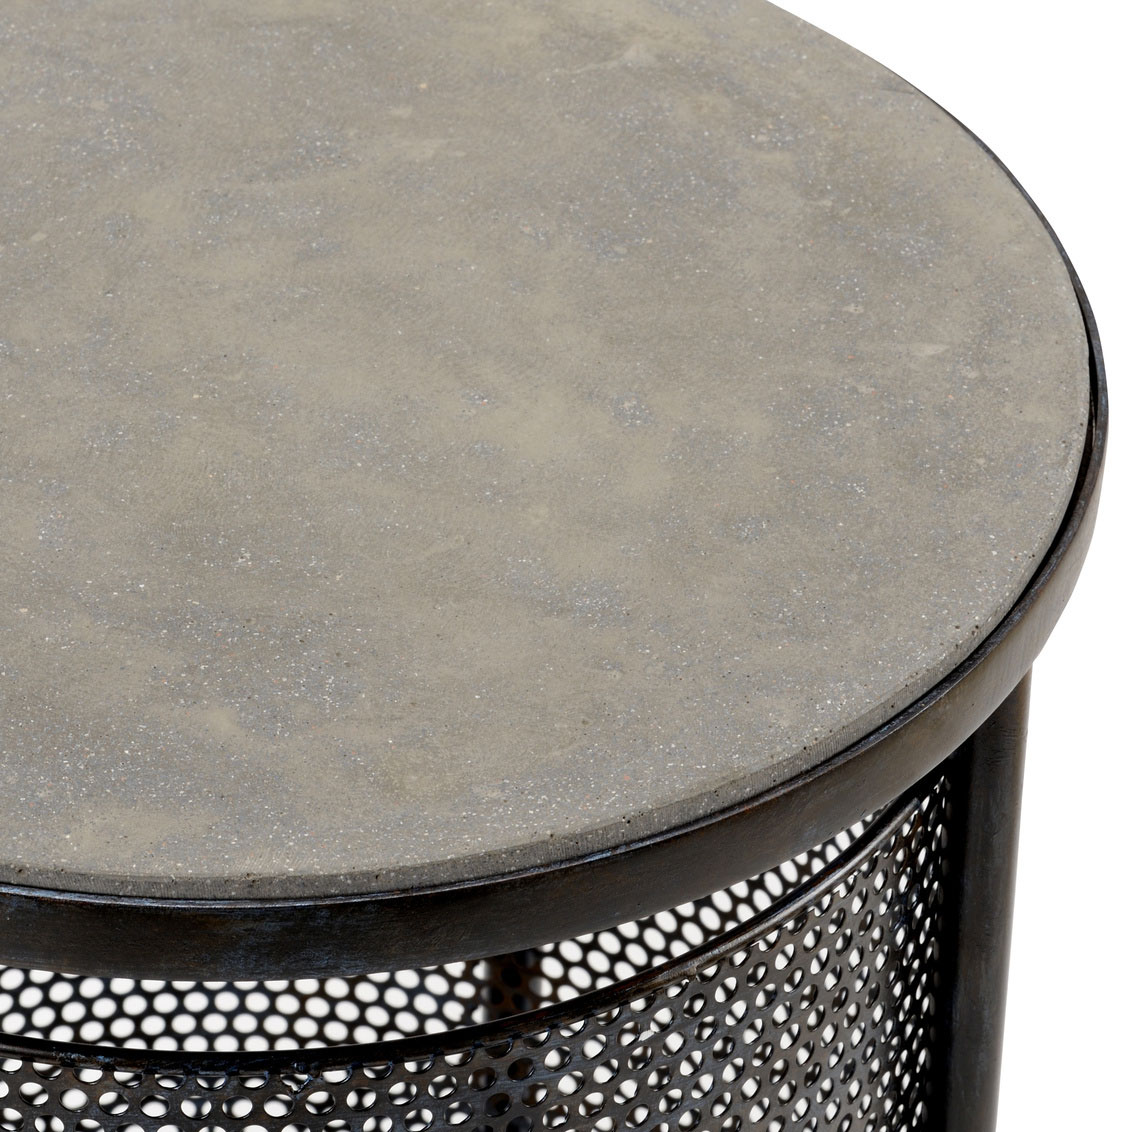 modern side table dandelion spell accent silver gray iron with raw steel finish concrete top dragonfly lamp oriental ceramic lamps diy outdoor wood patio furniture over the toilet